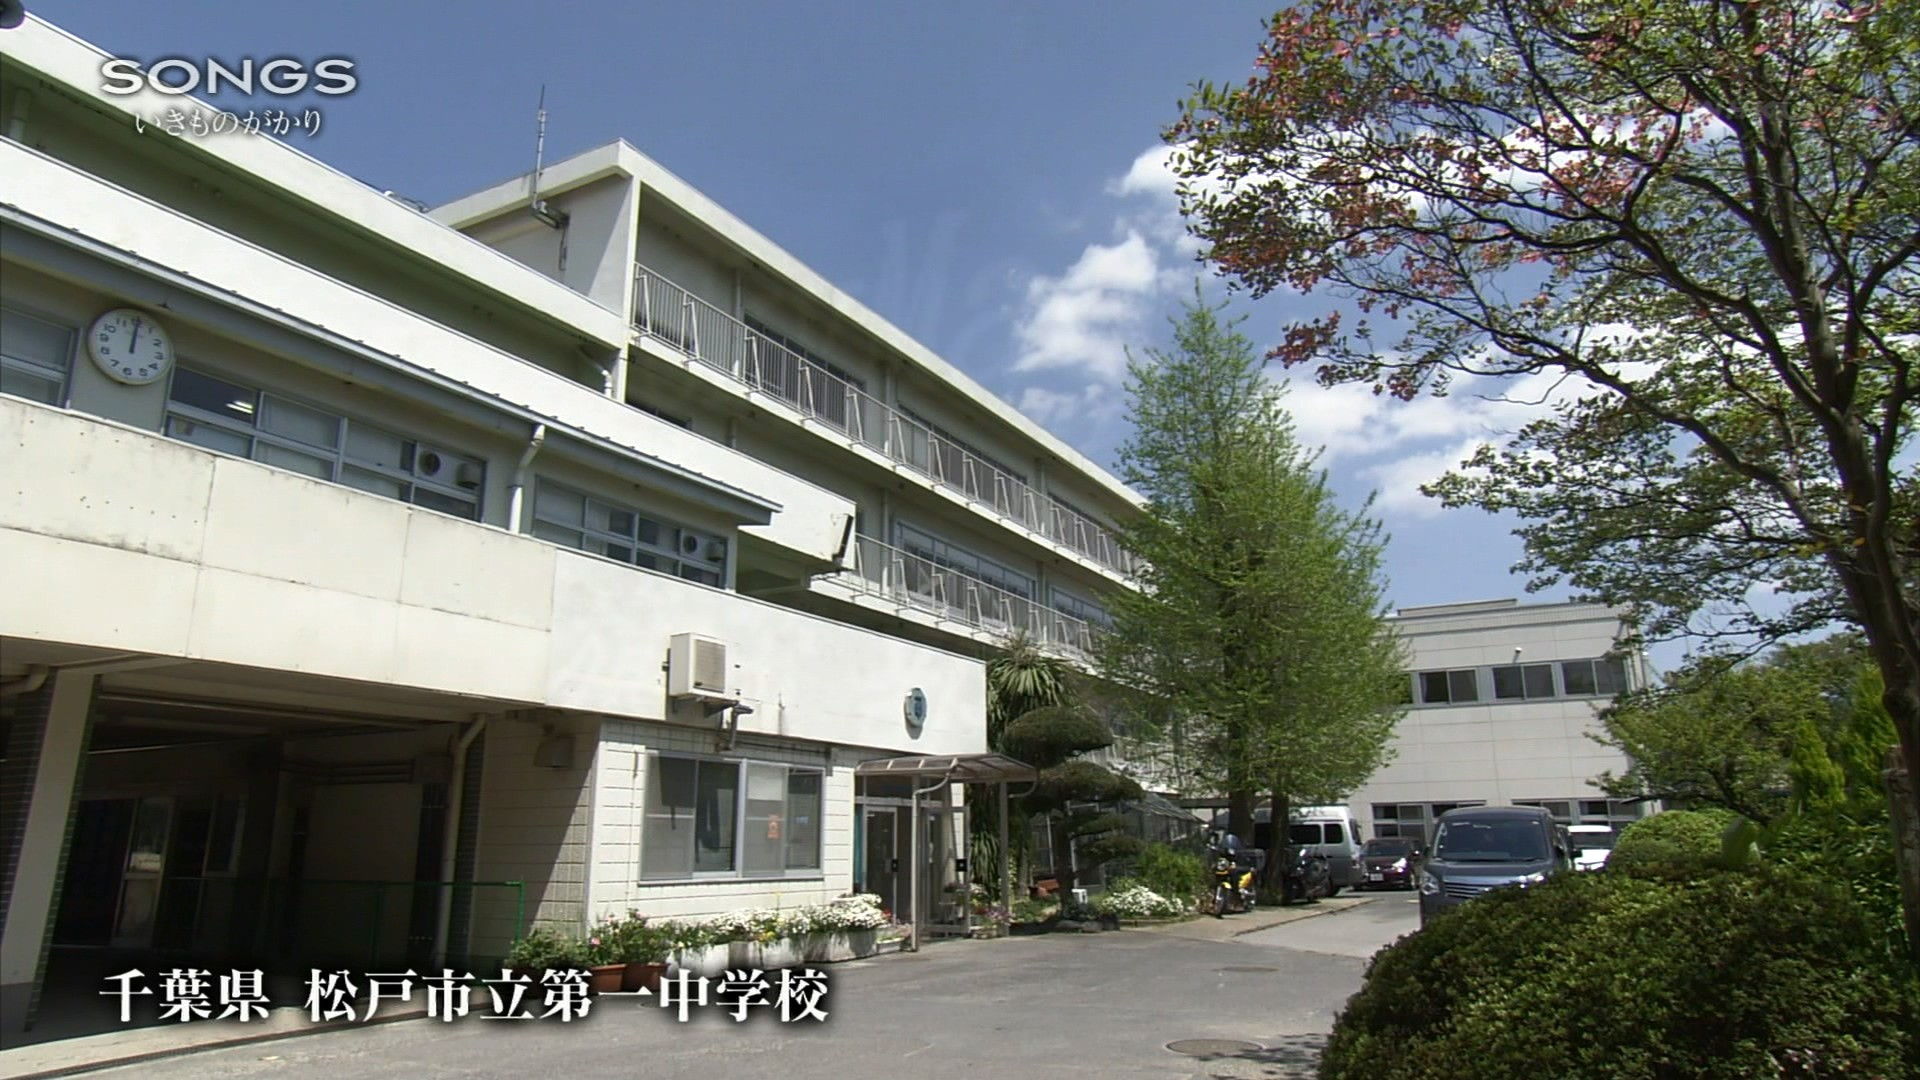 2016.04.28 全場(SONGS).ts_20160428_223924.921